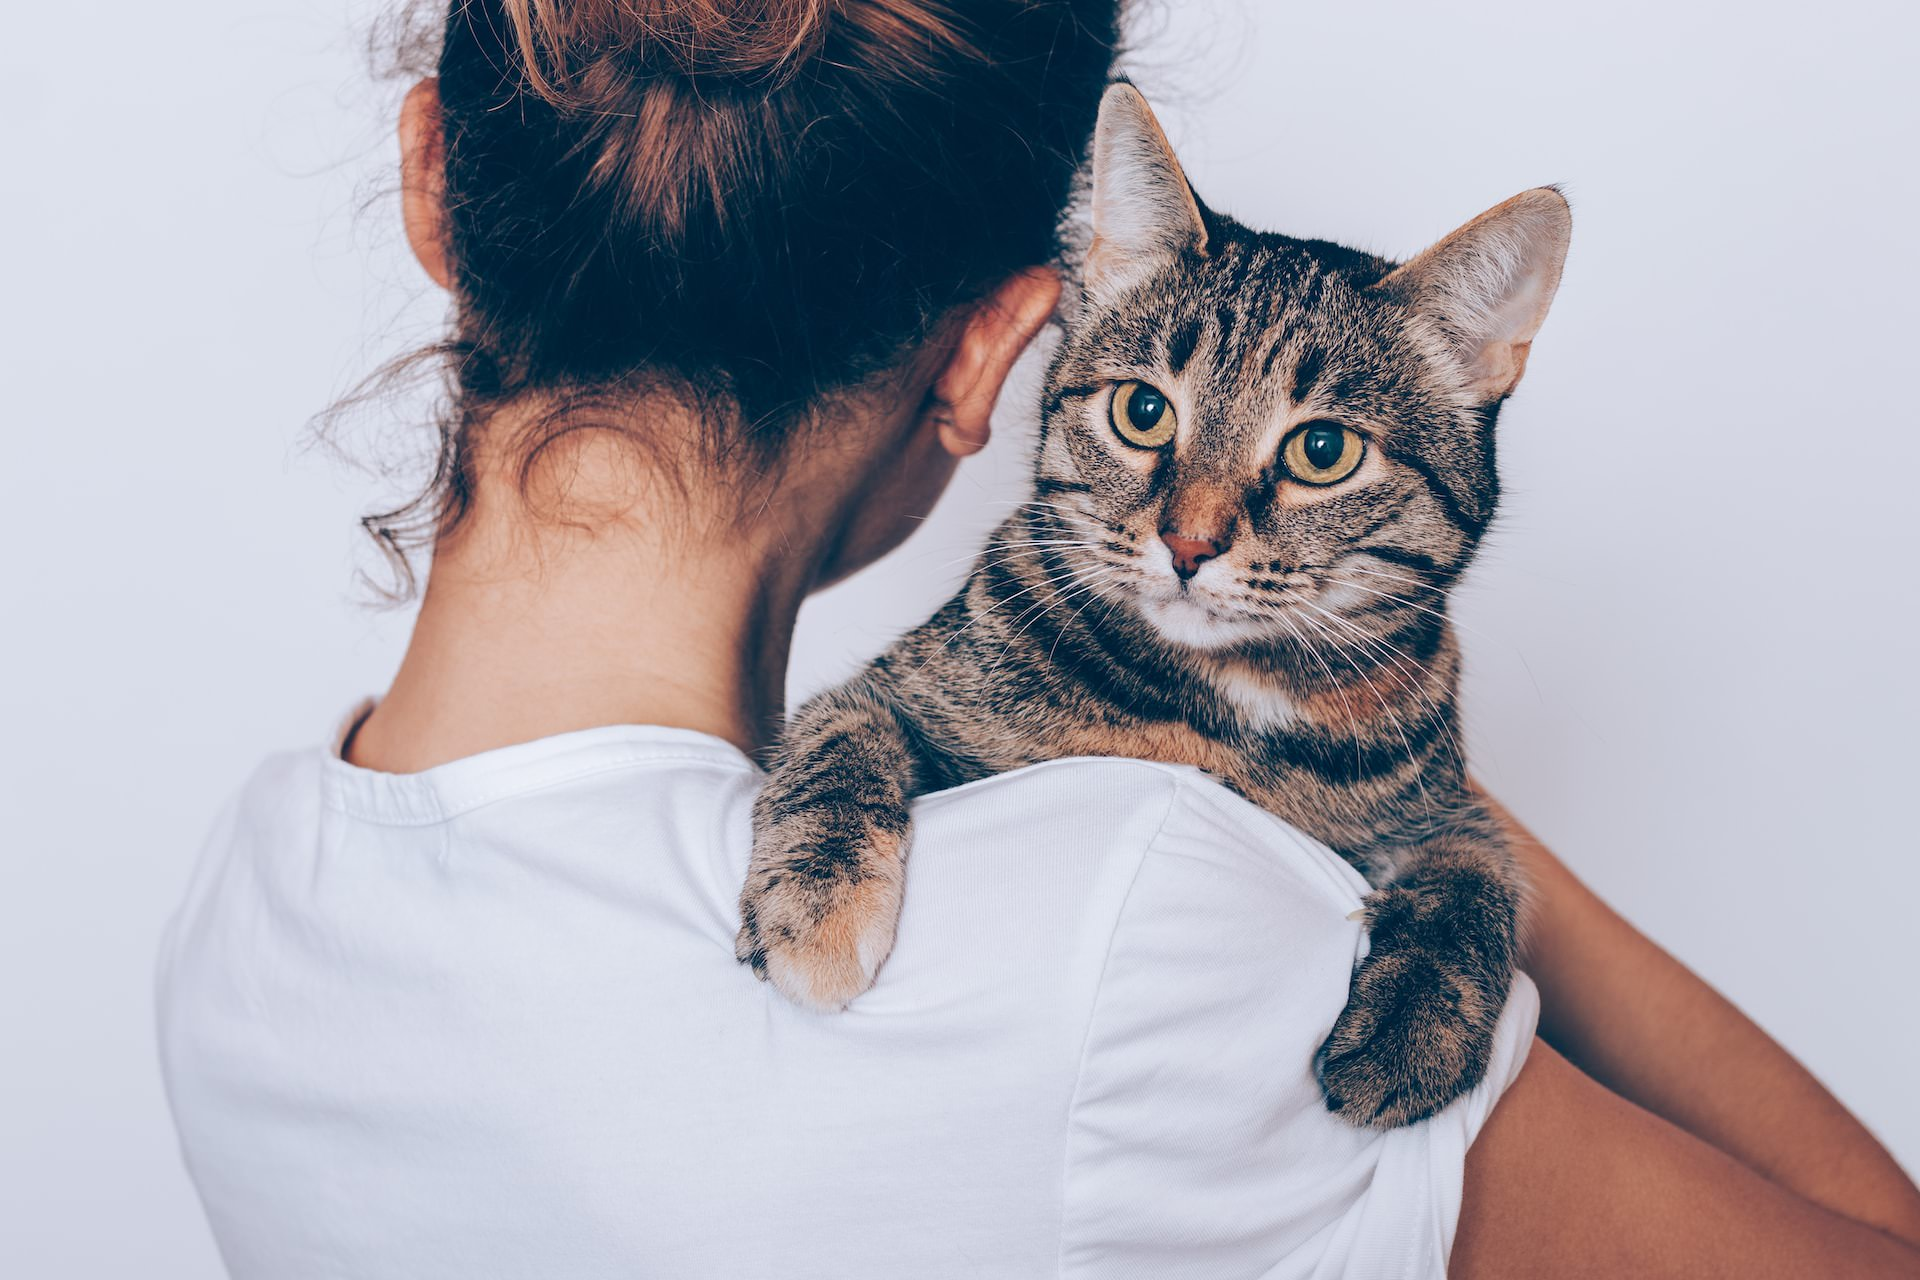 Cat on a woman's shoulders